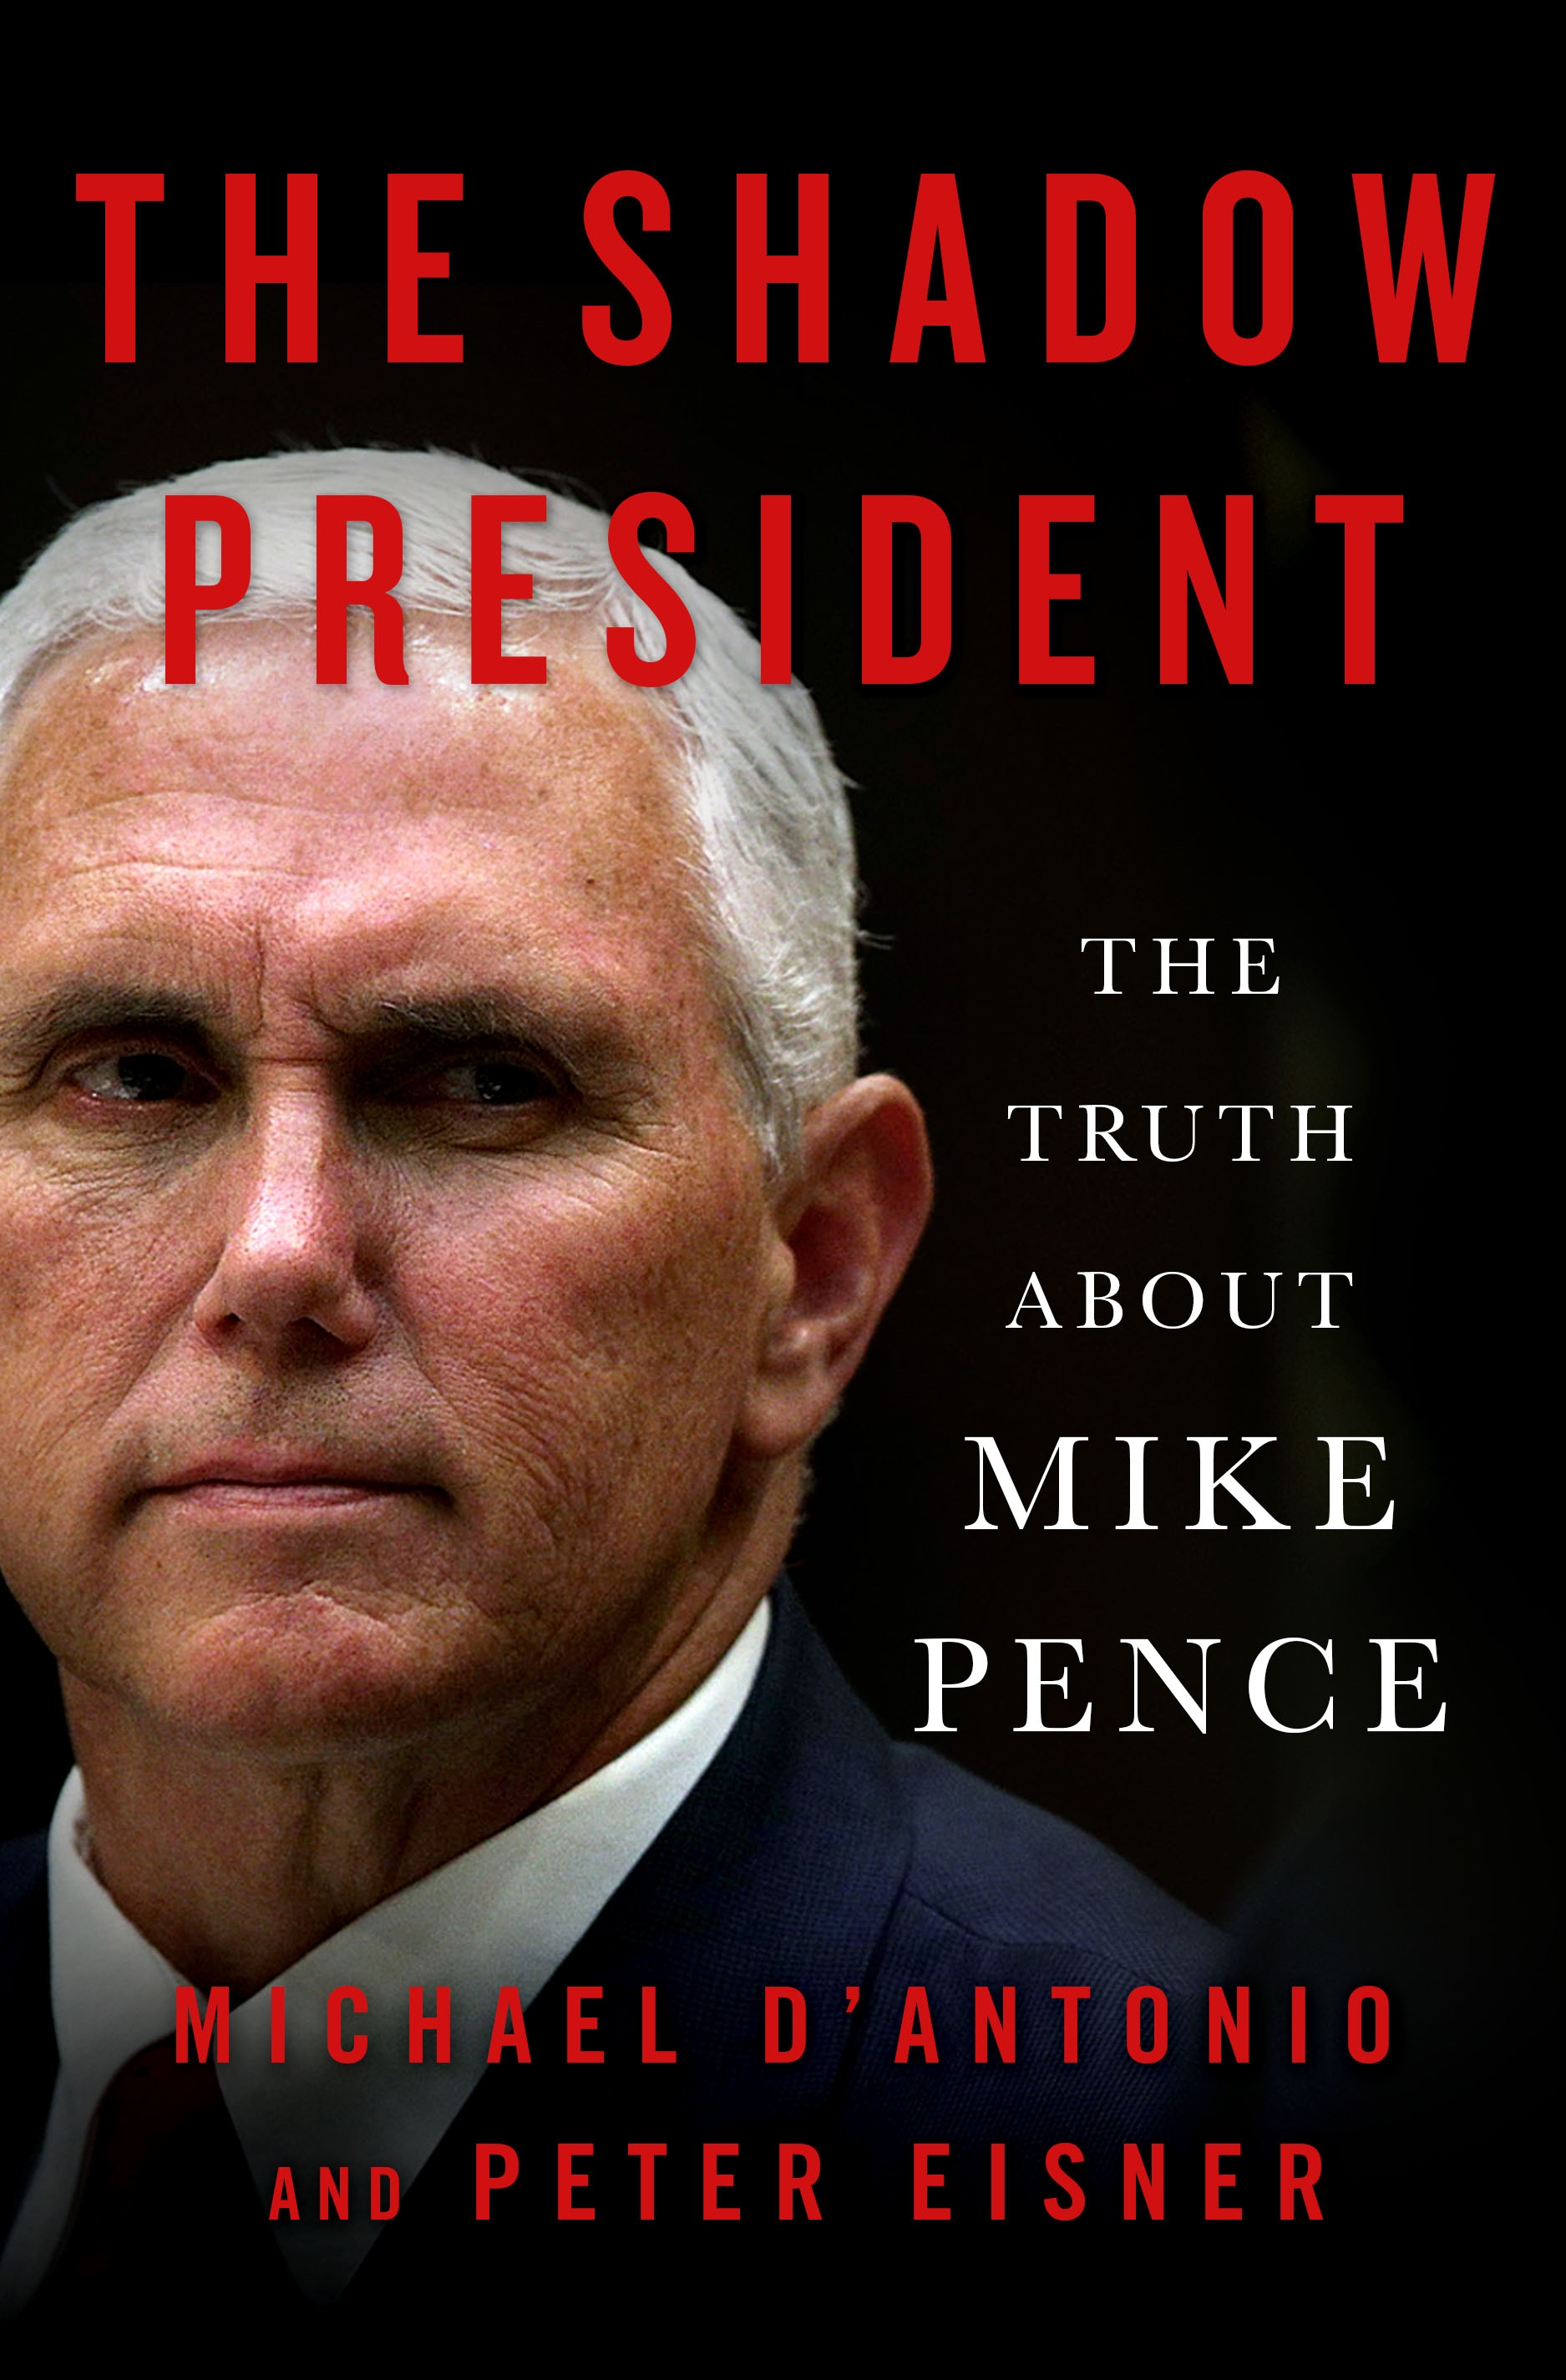 The shadow president the truth about Mike Pence cover image